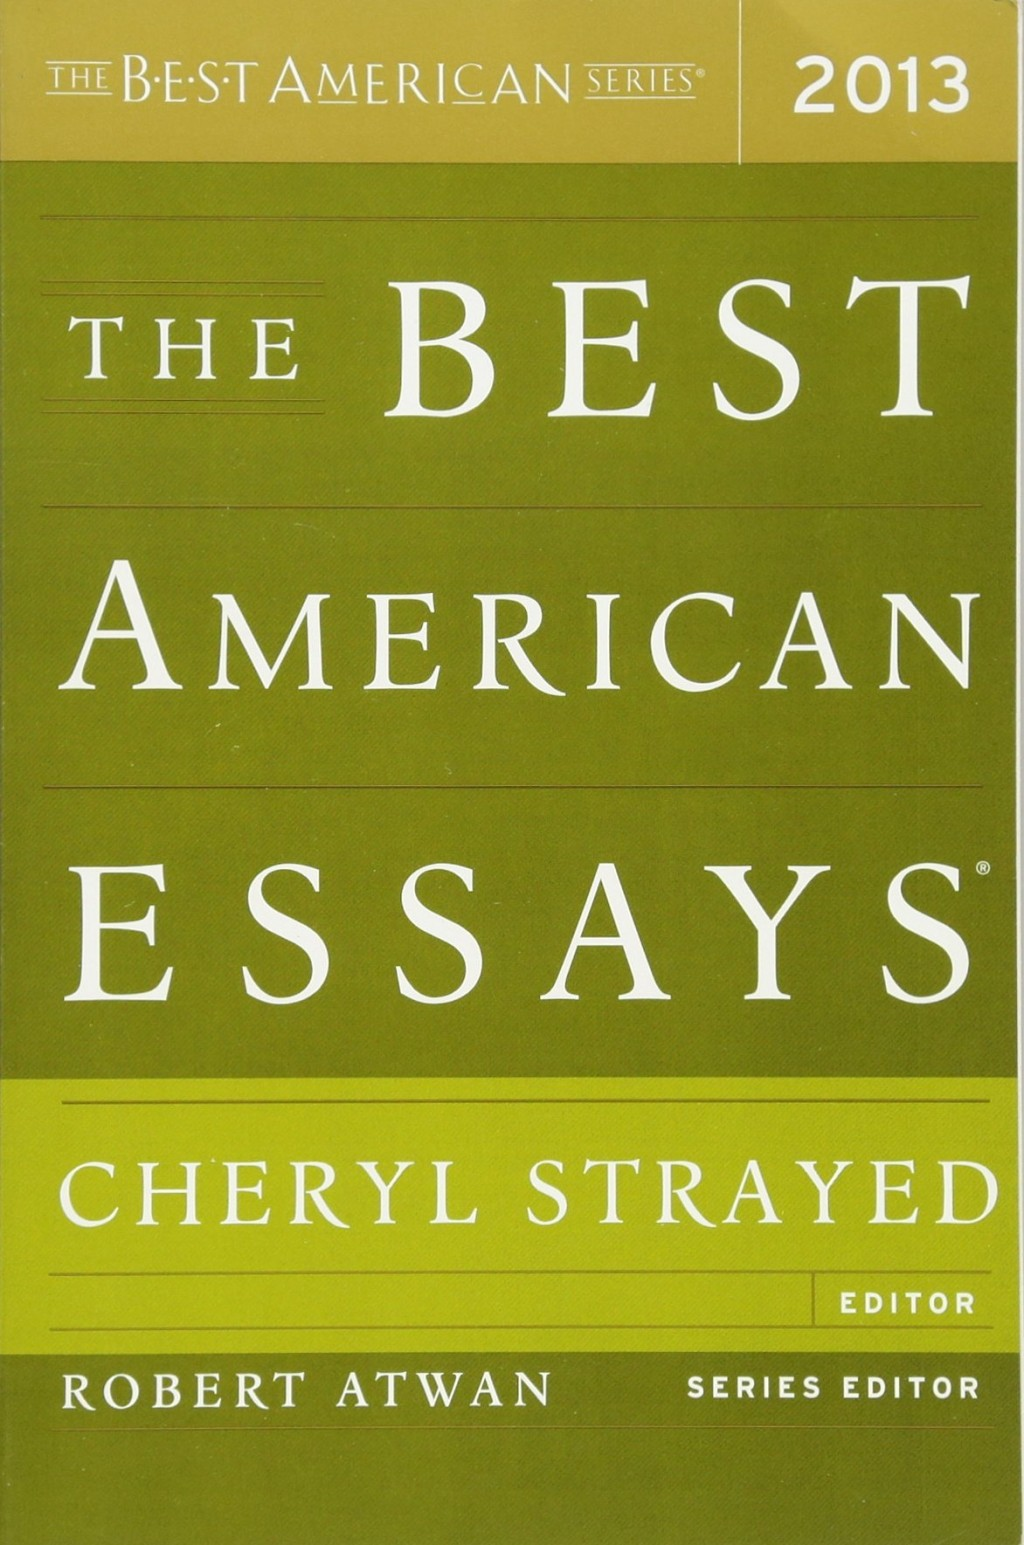 003 Essay Example The Best American Essays Phenomenal 2016 Pdf Download Audiobook Sparknotes Large